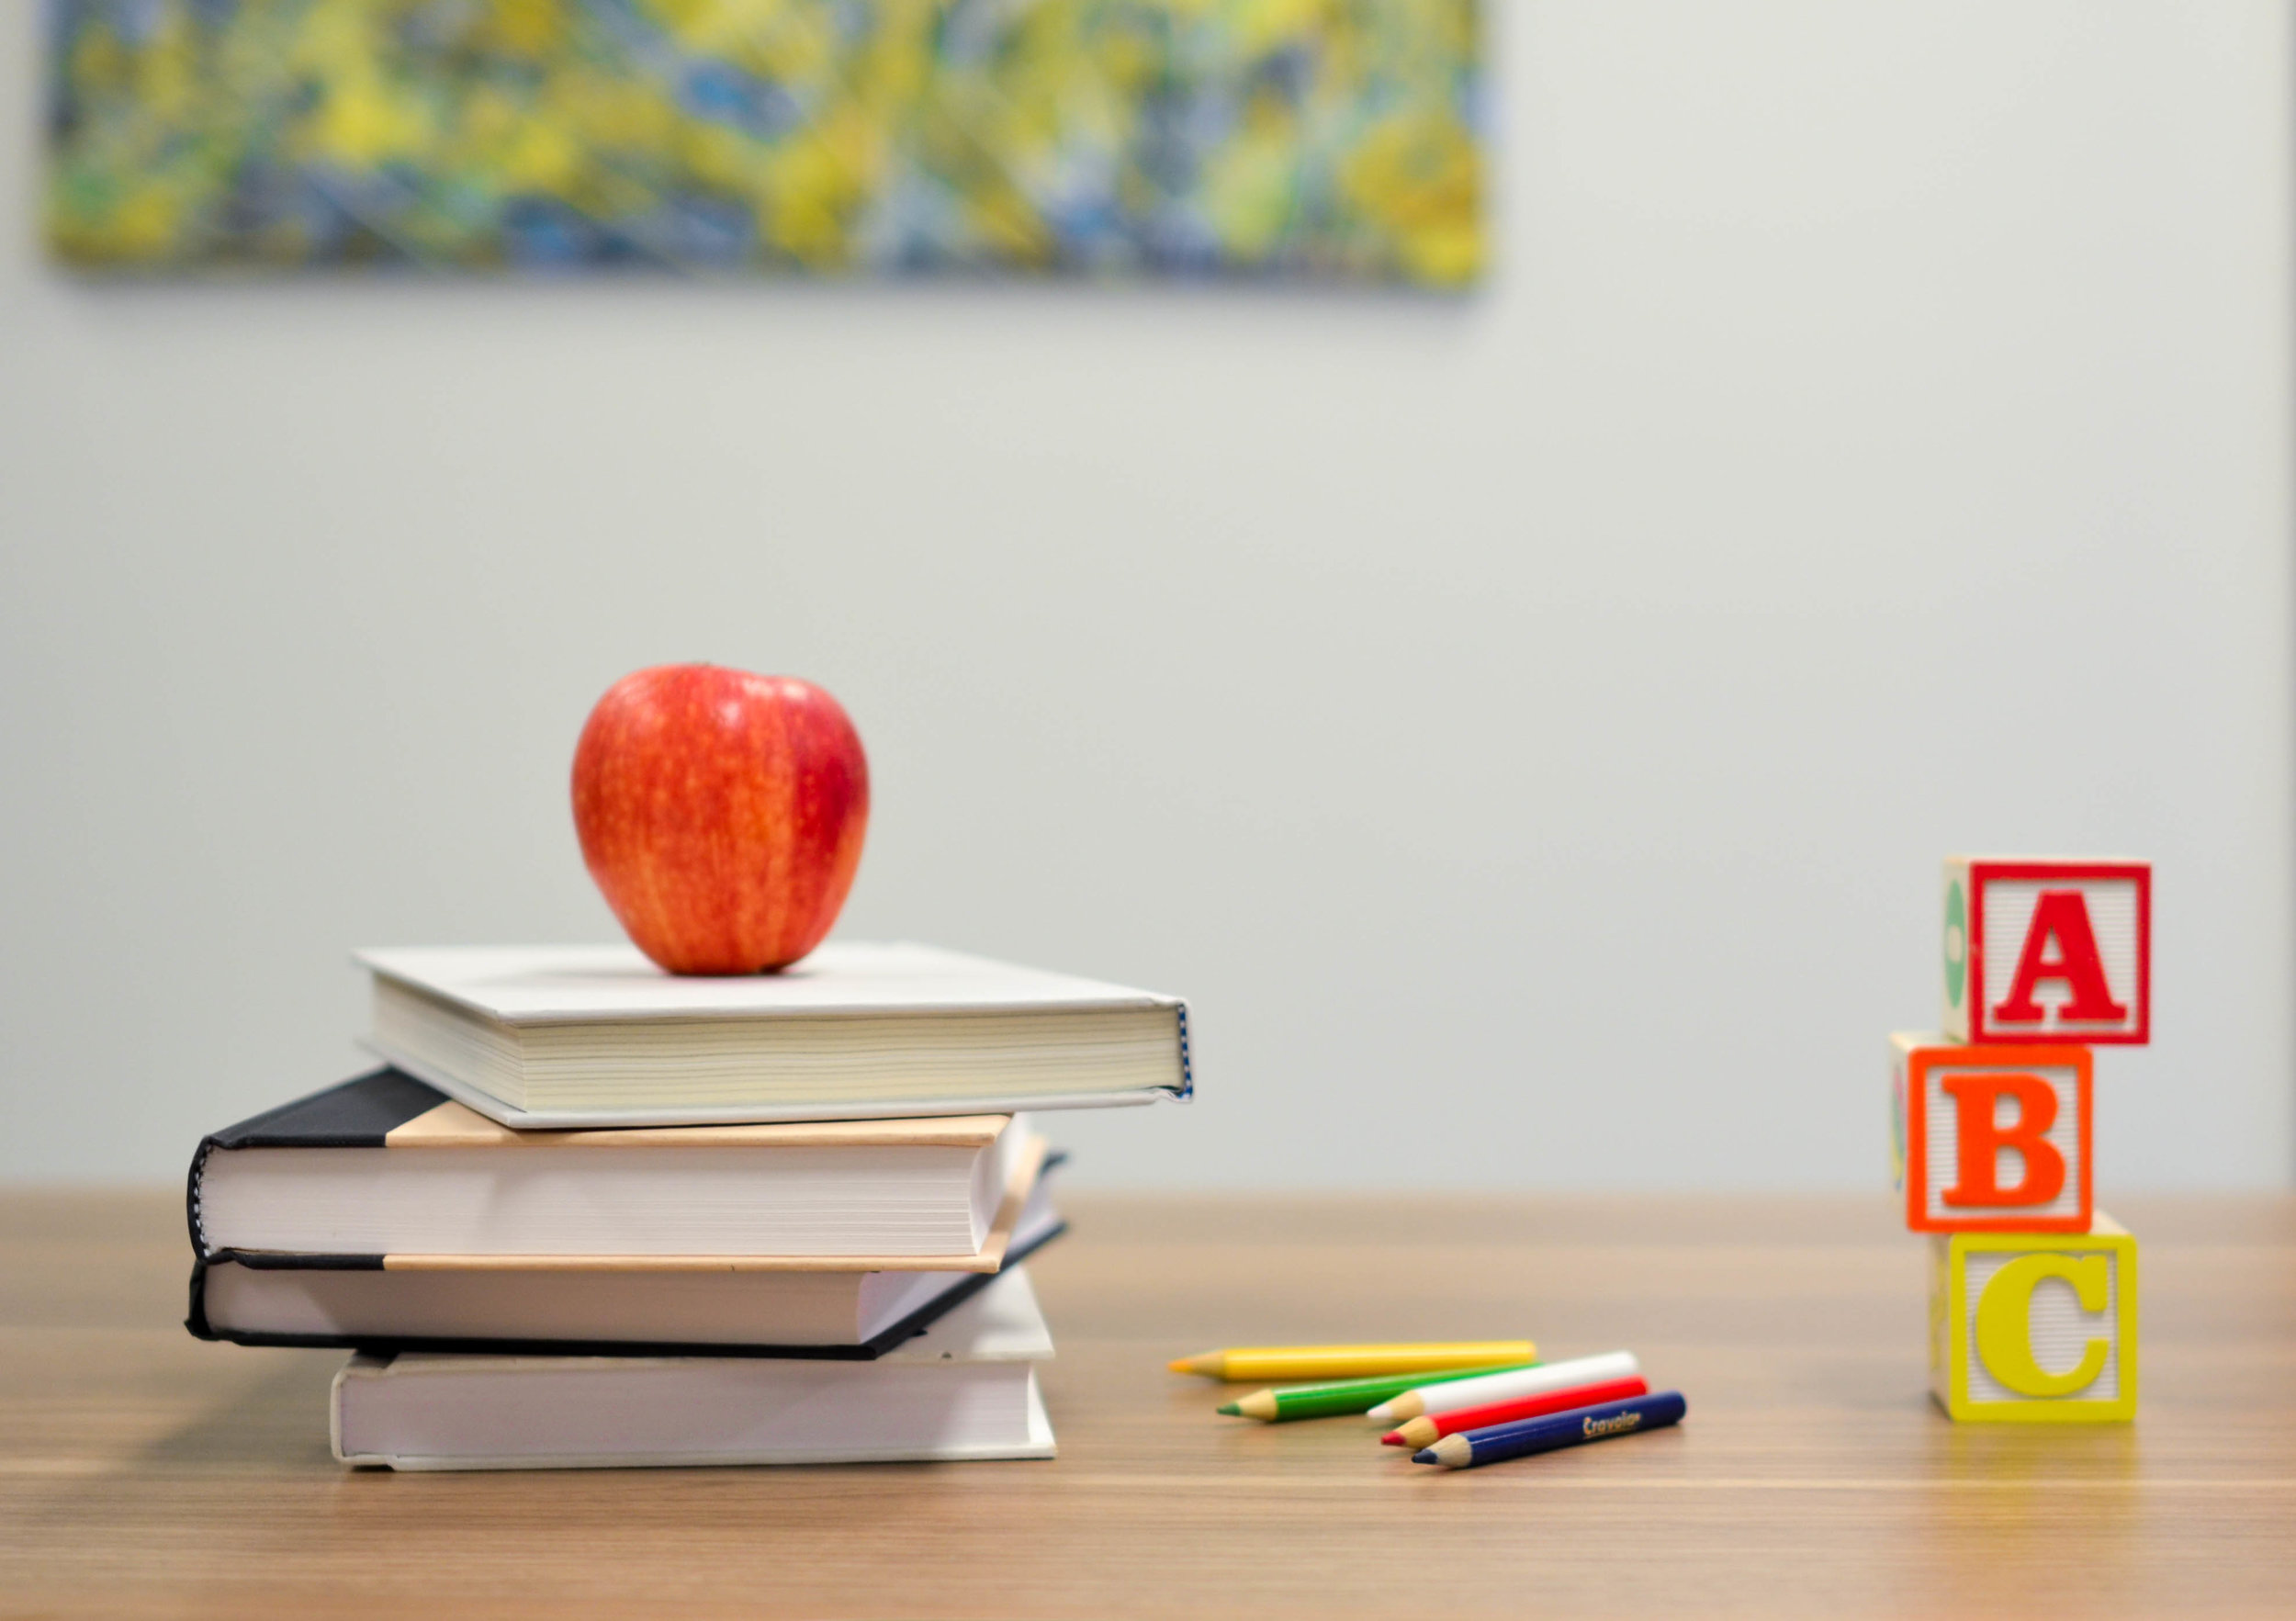 Apple on top of books with coloured pencils and A B C bricks on a table